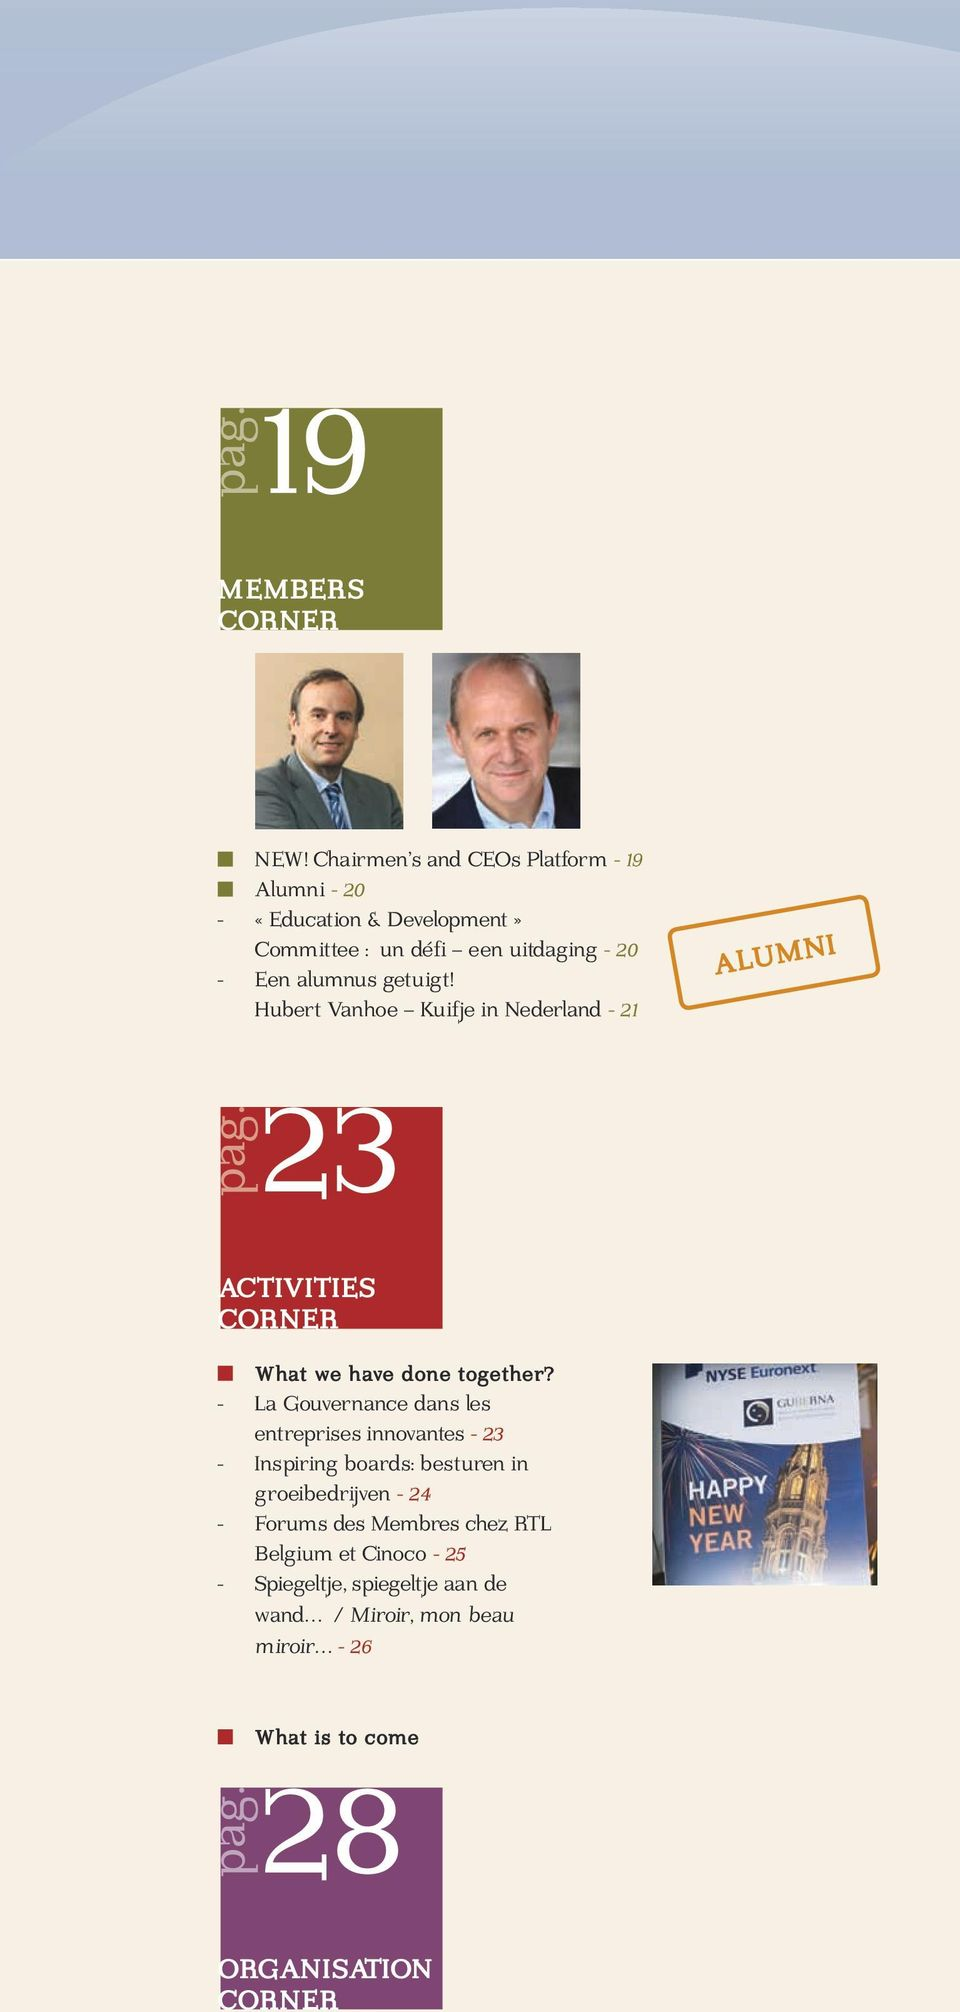 getuigt! Hubert Vanhoe Kuifje in Nederland - 21 Alumni 23 Activities corner What we have done together?